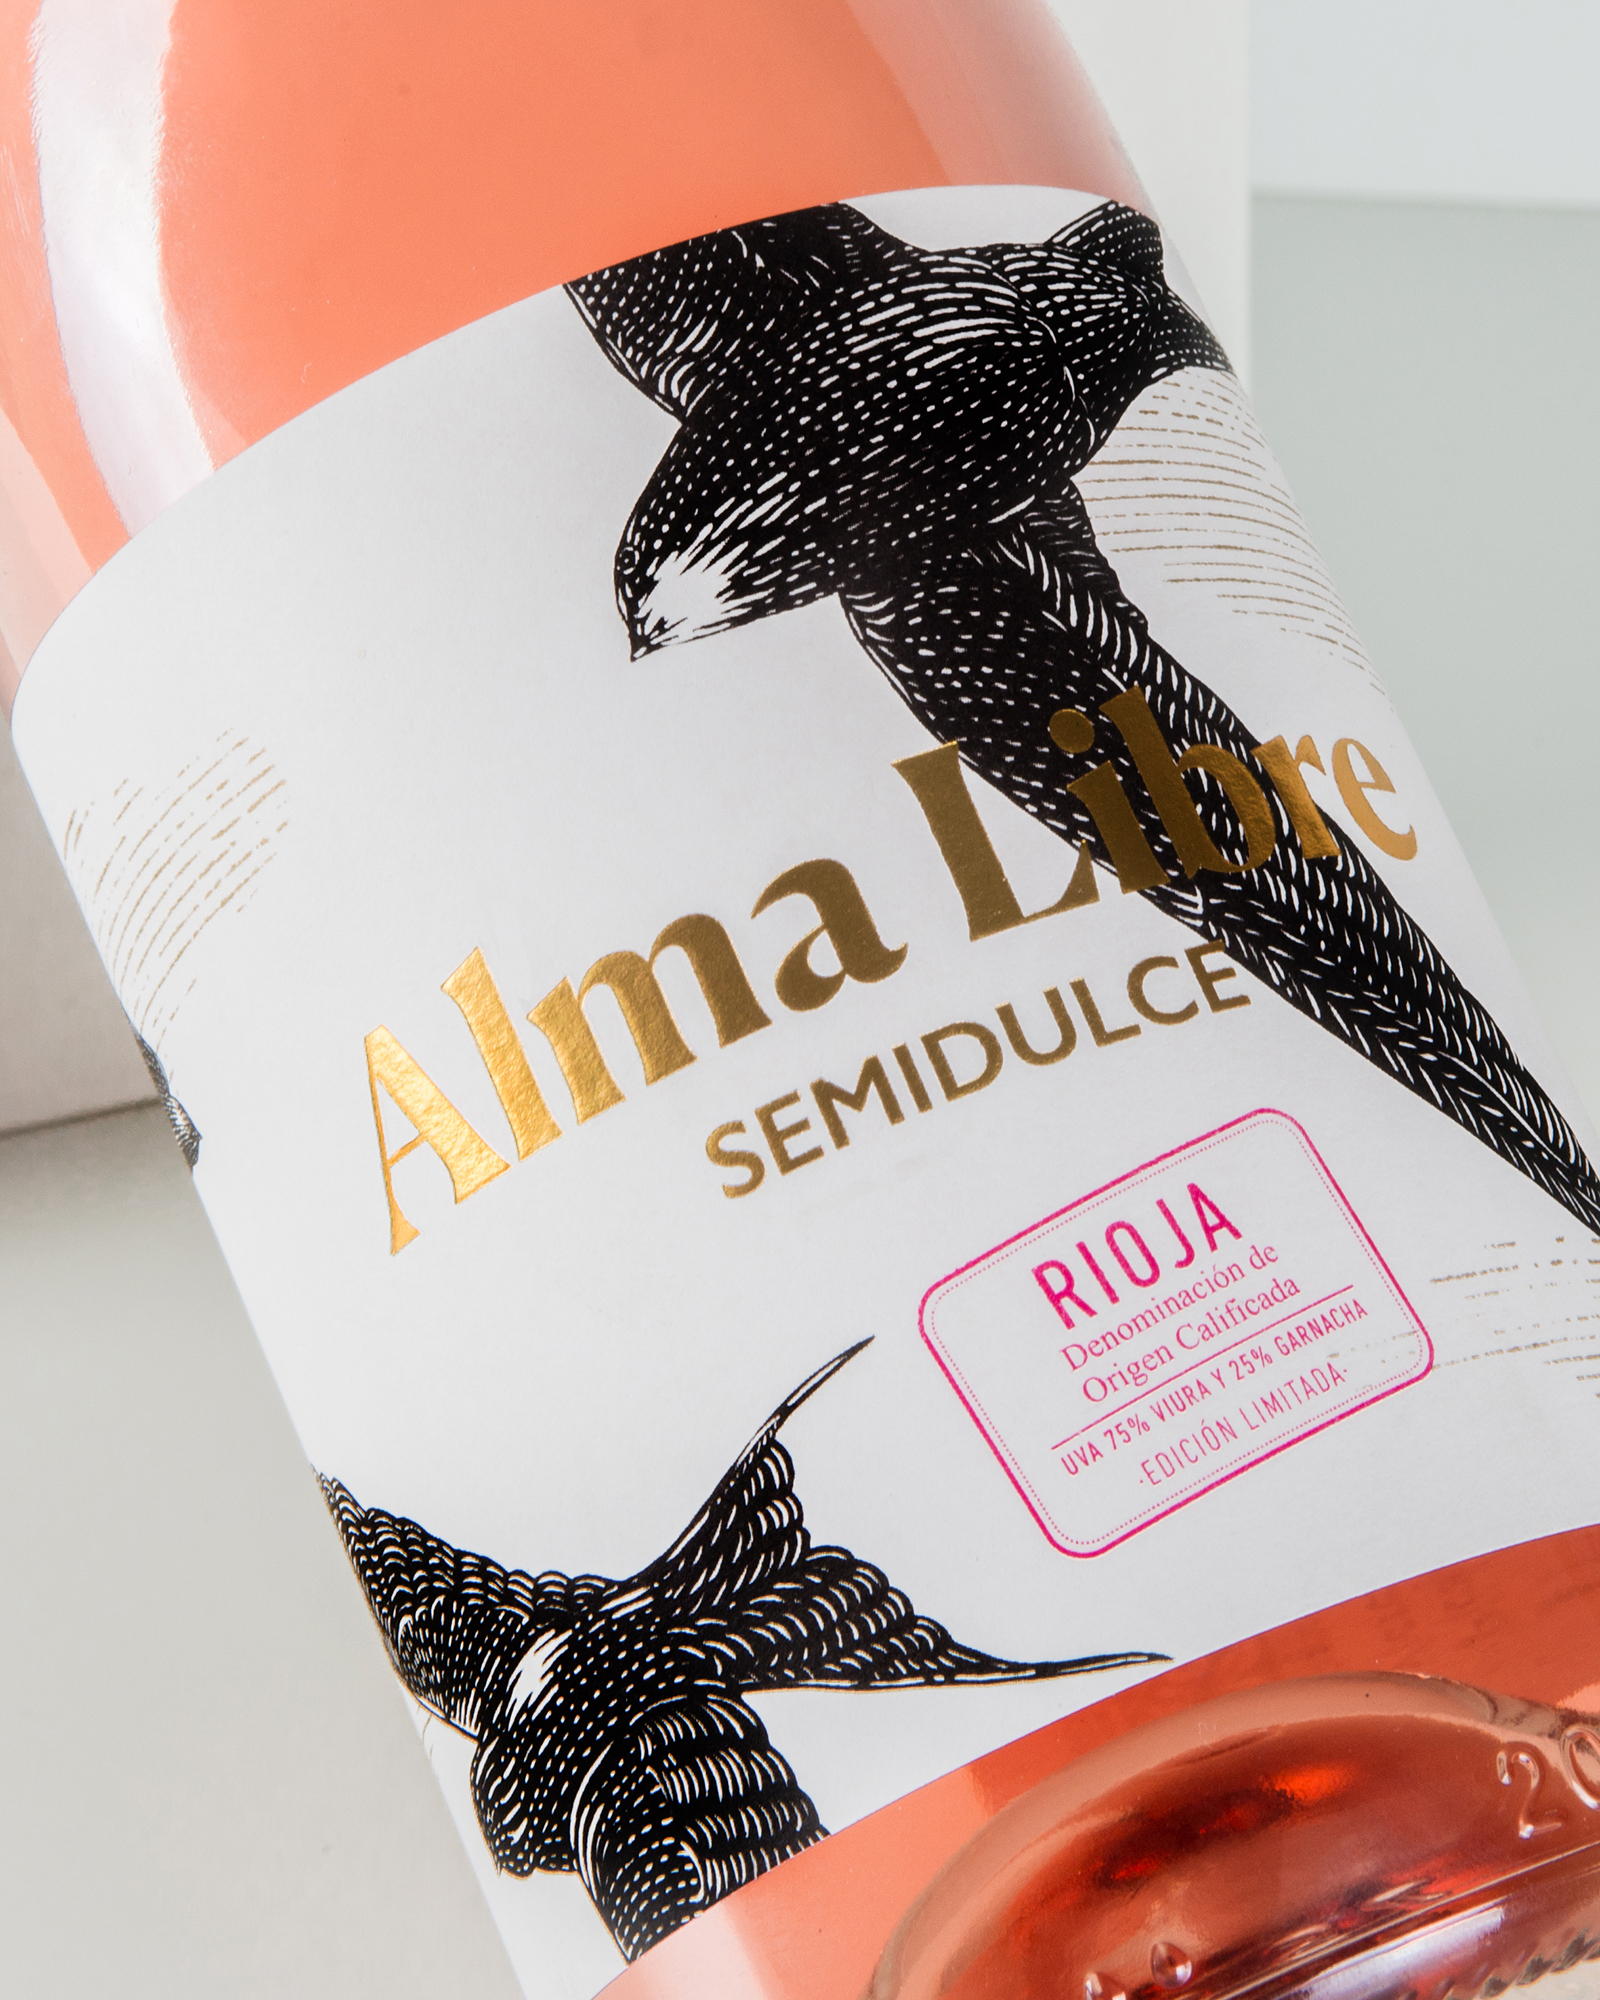 Spanish Limited Edition Packaging Design for Migratory Birds and for Labels with No Borders